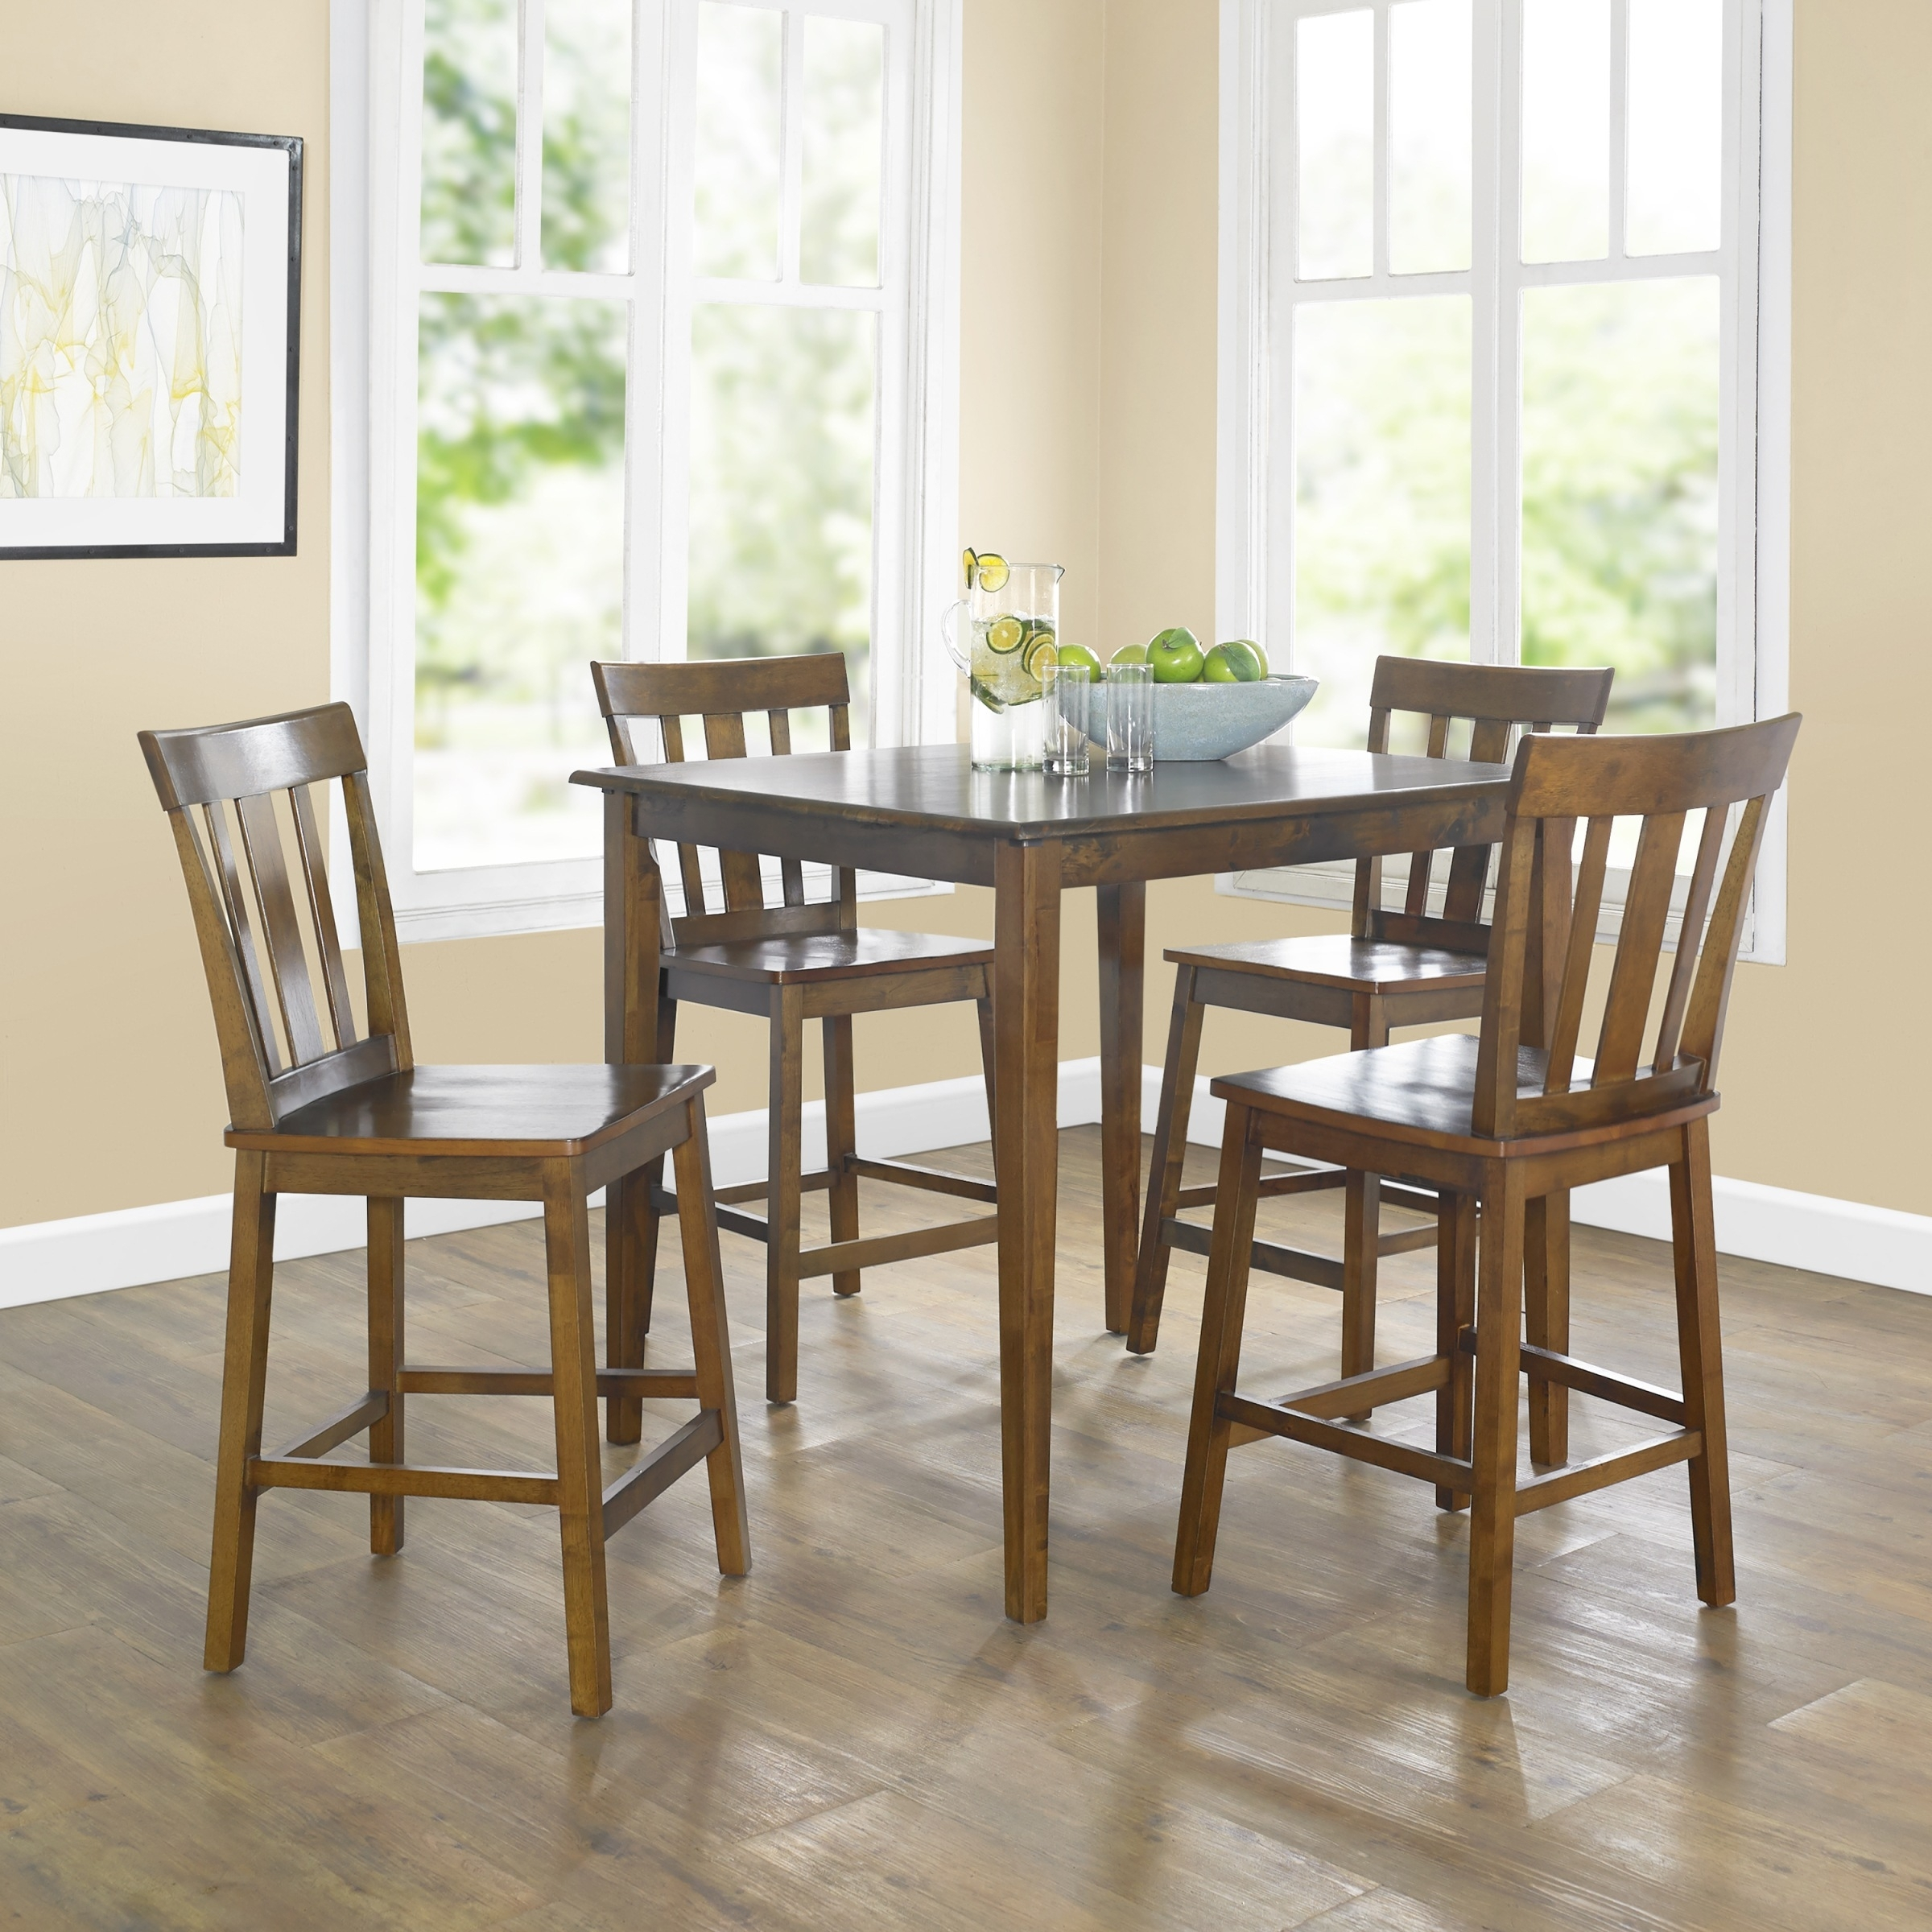 Mainstays 5 Piece Mission Counter Height Dining Set – Walmart Throughout Current Laurent 7 Piece Rectangle Dining Sets With Wood Chairs (View 19 of 20)